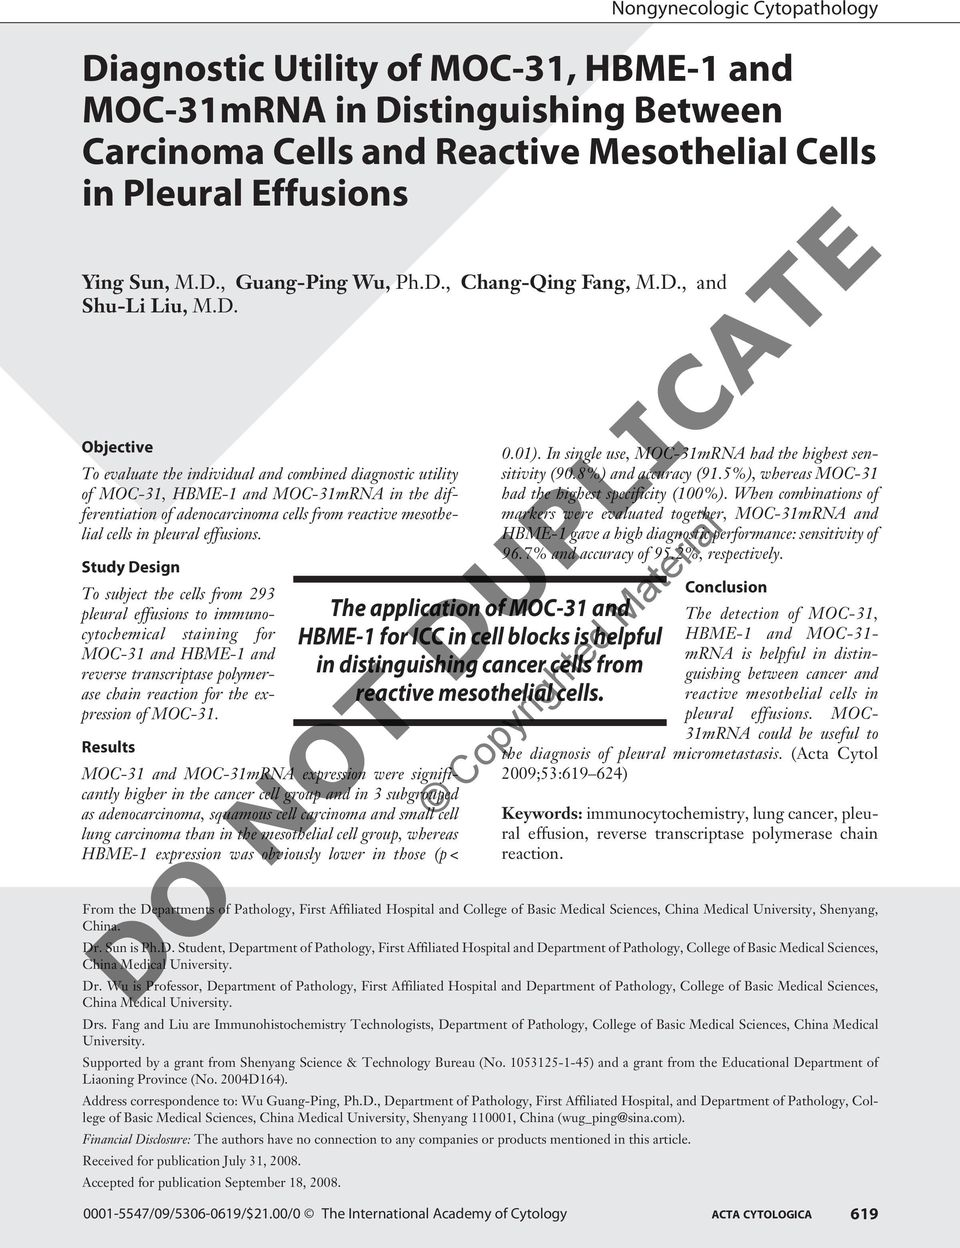 cells in pleural effusions.